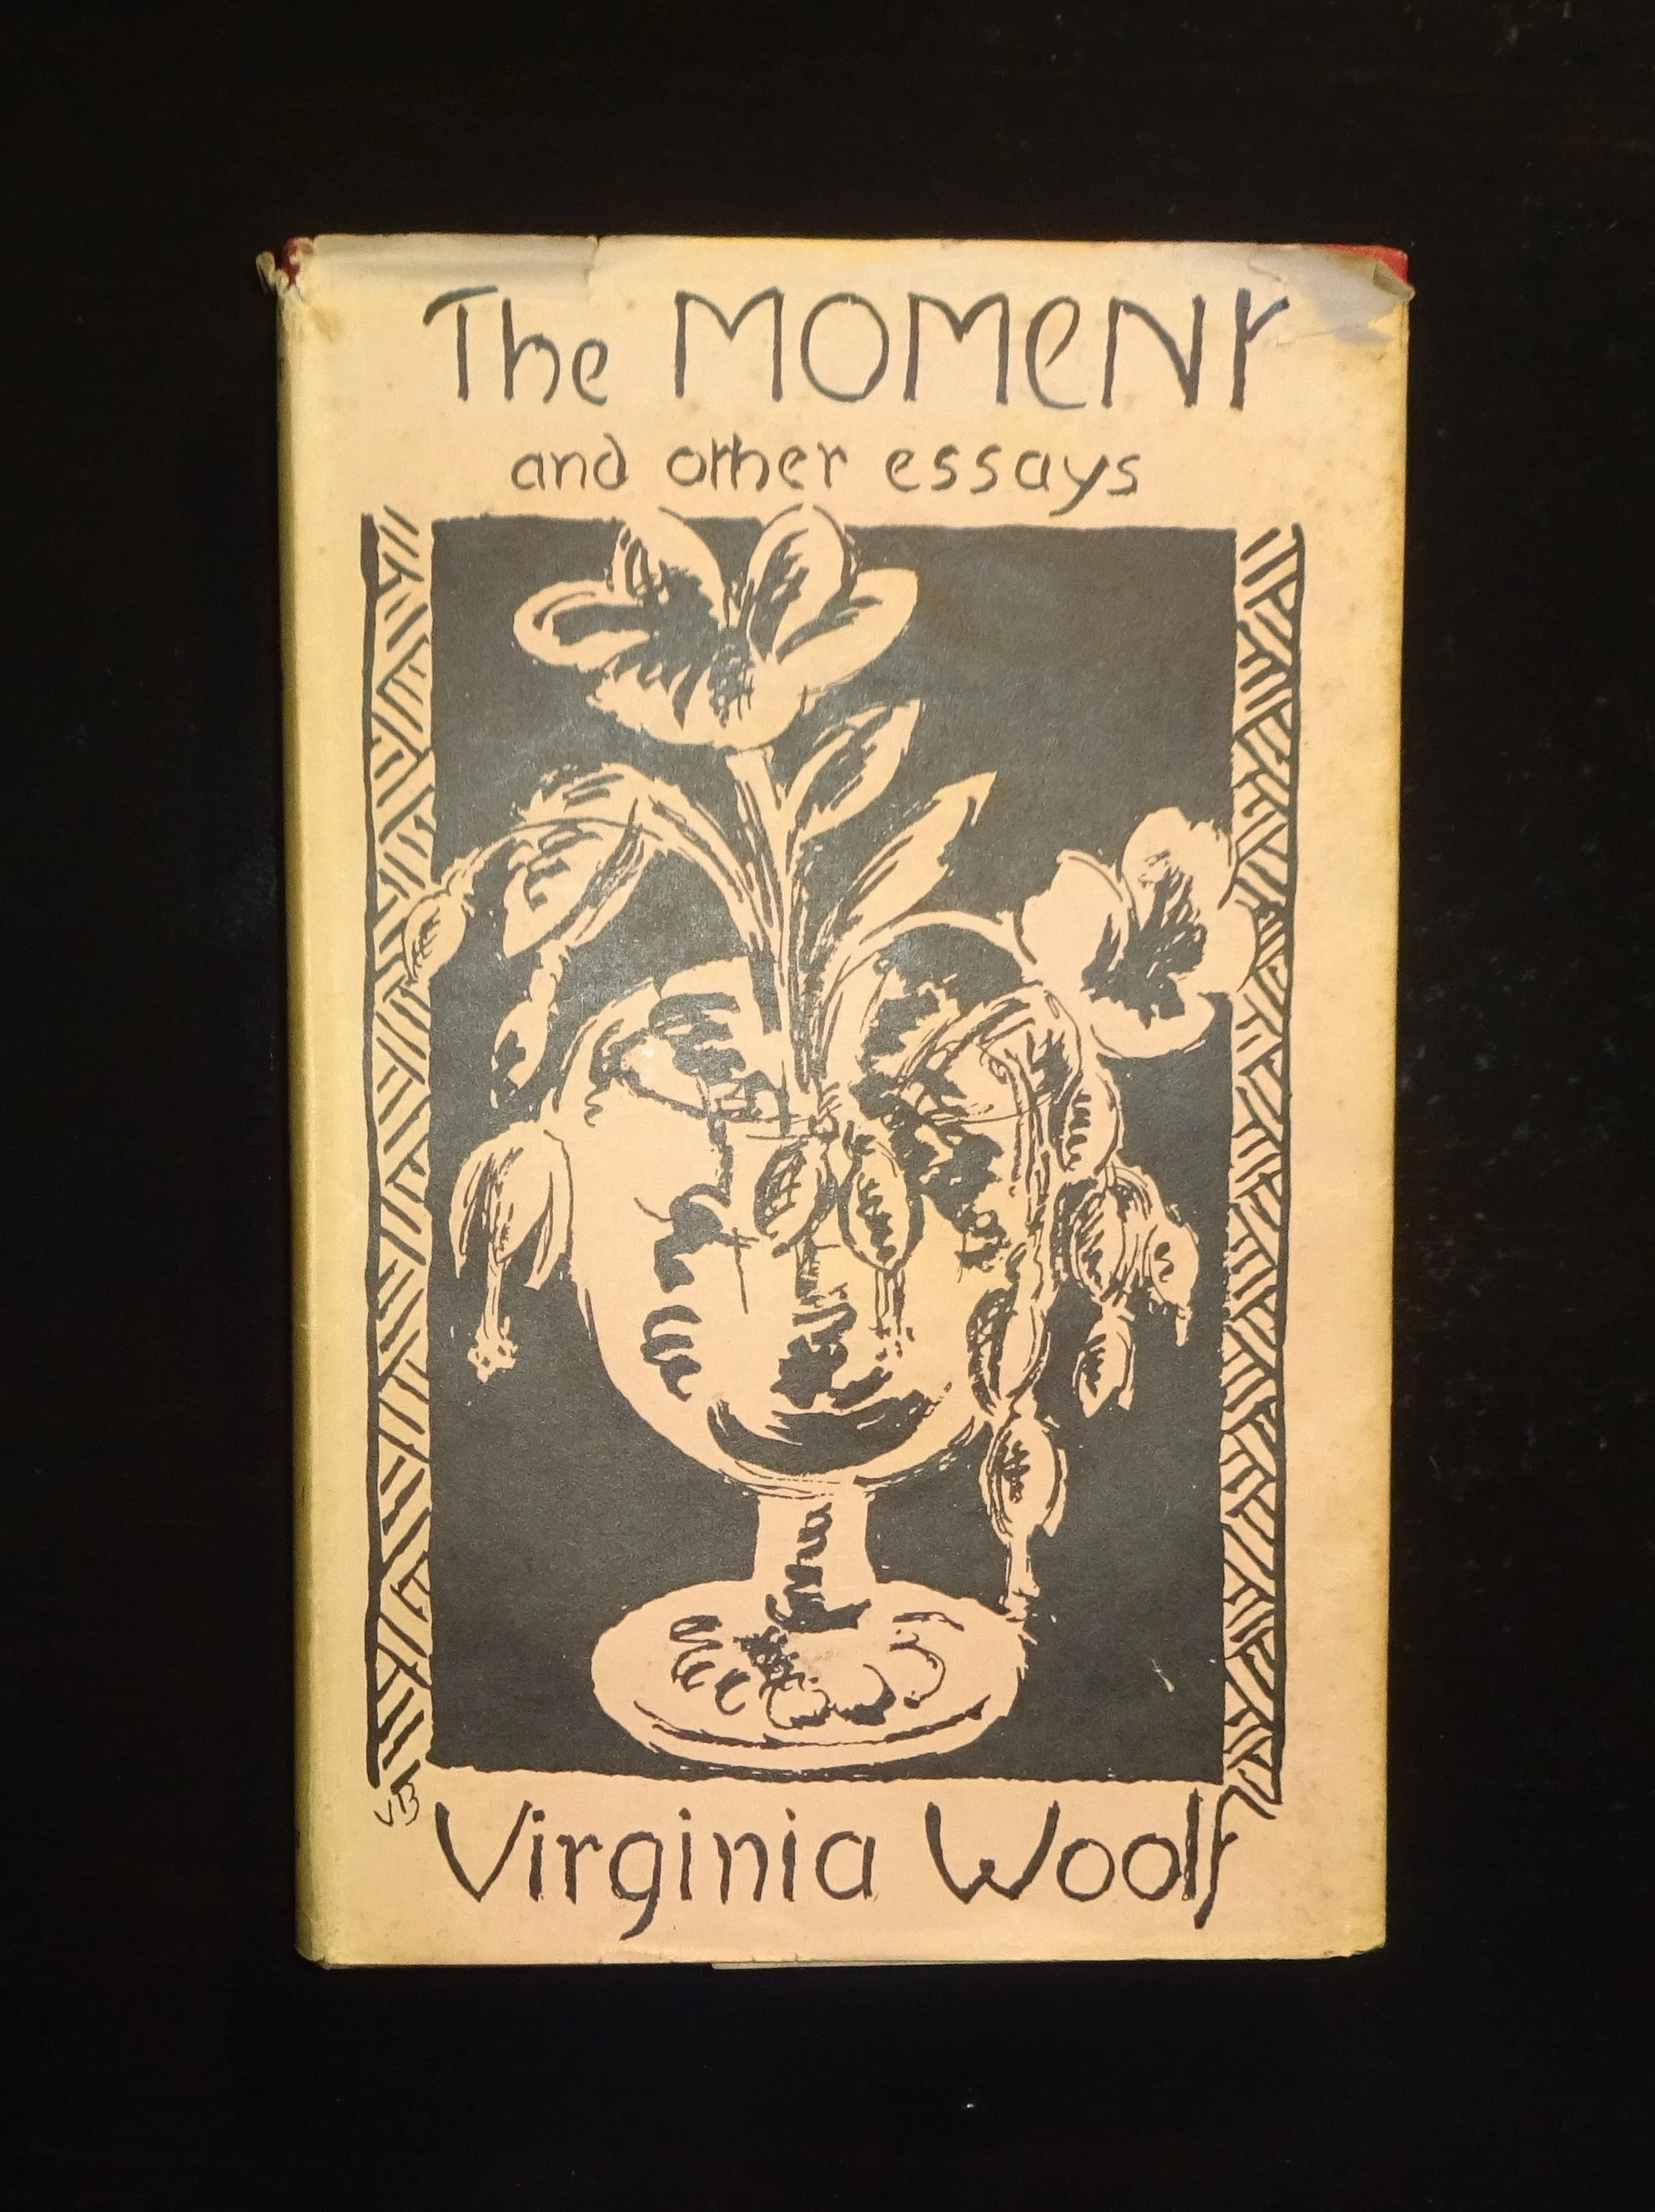 1947 VIRGINIA WOOLF The Moment and Other Essays 1st Edition Etsy